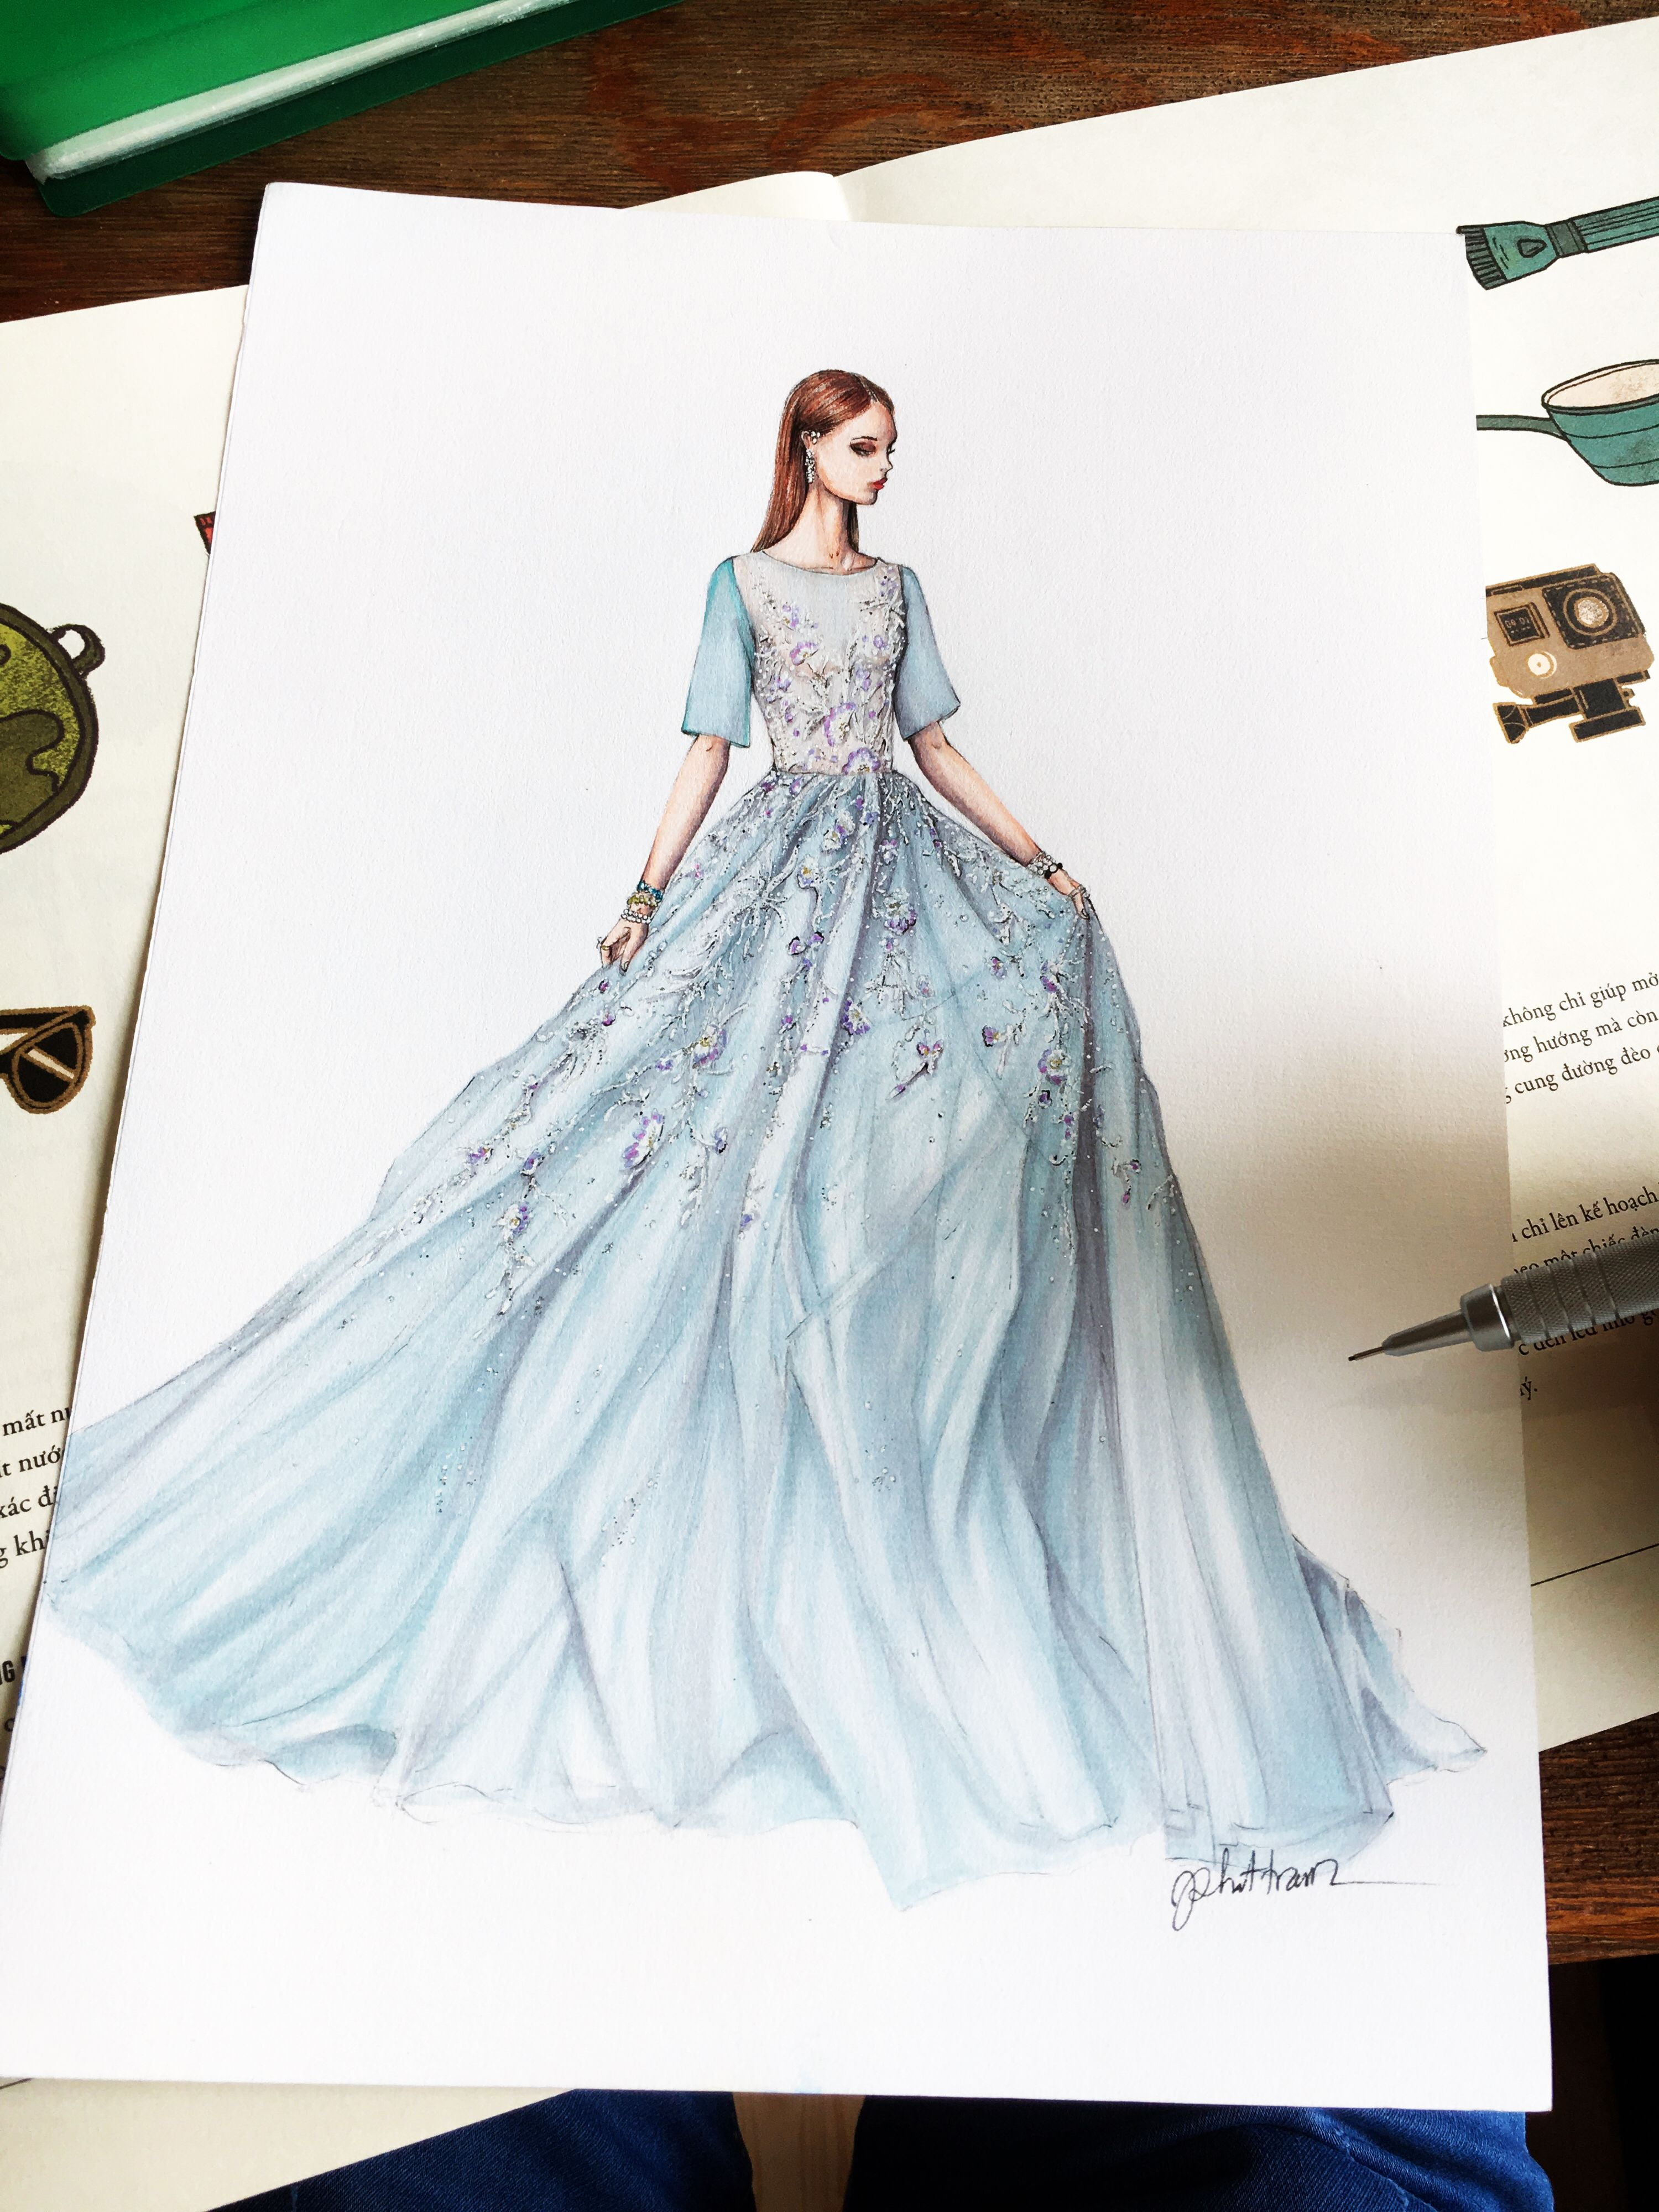 This is a graphic of Obsessed Drawing Of Dress Design